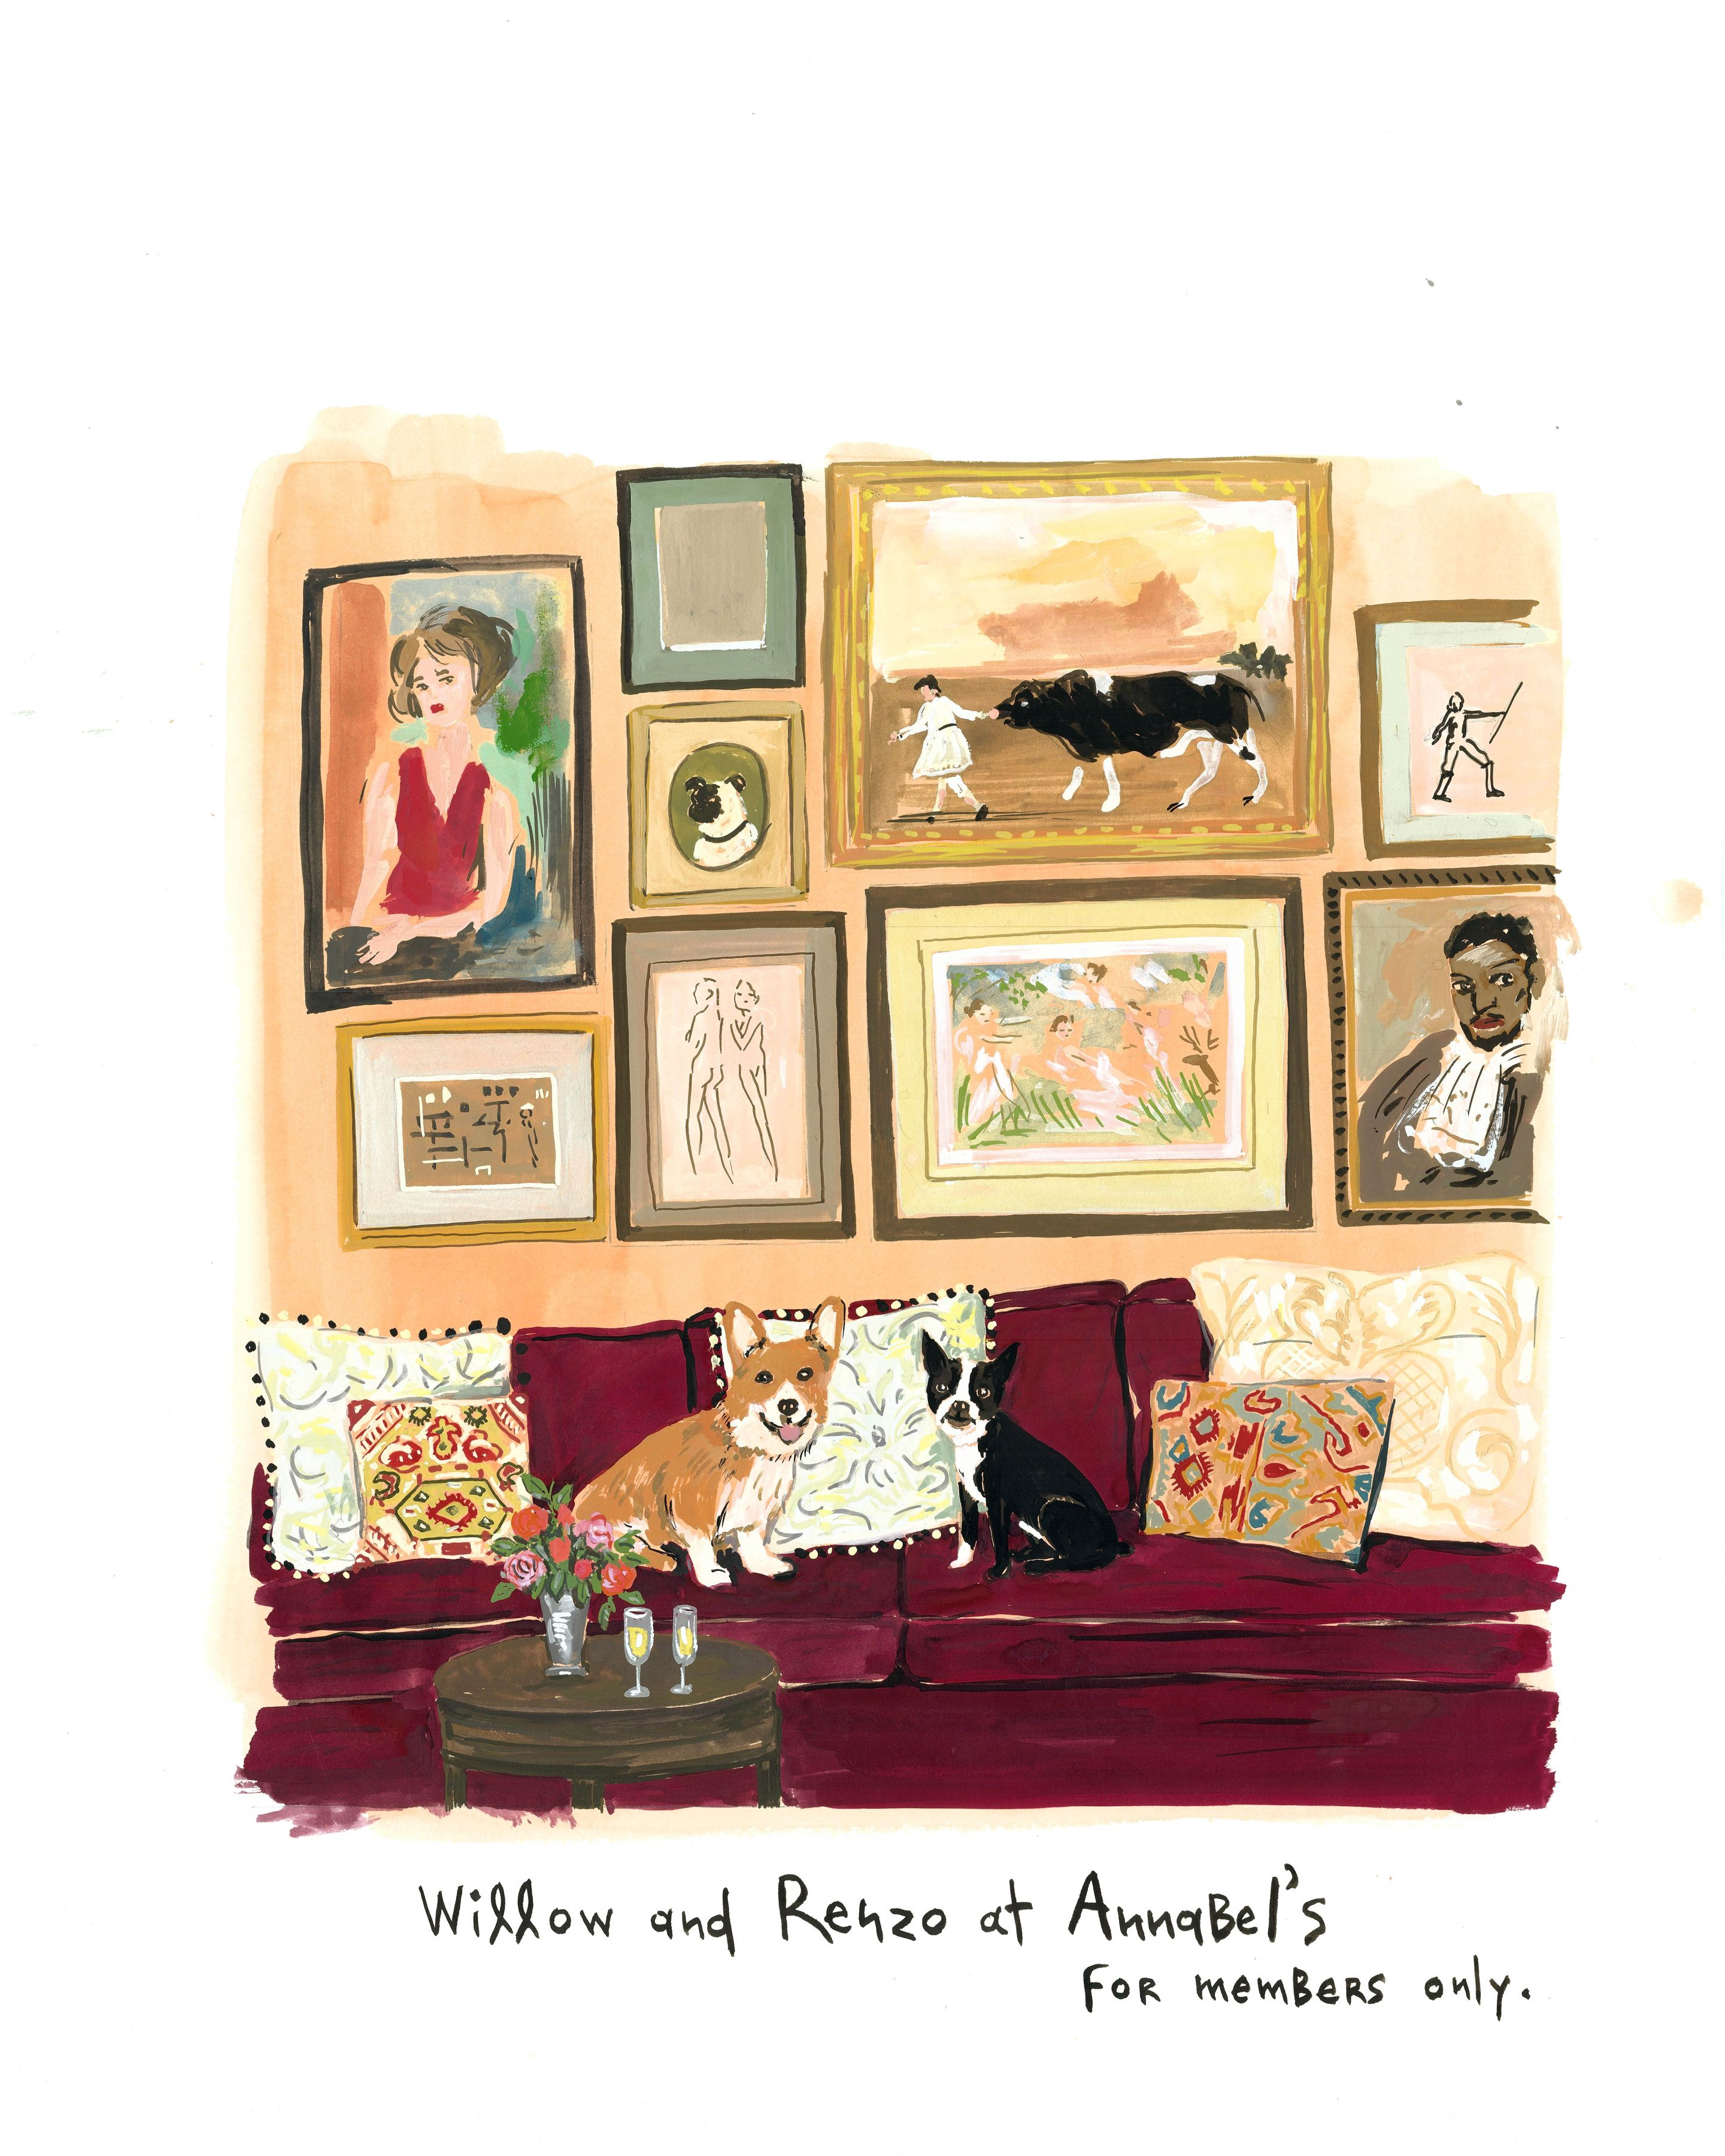 At Annabel's, 2014, Gouache on paper